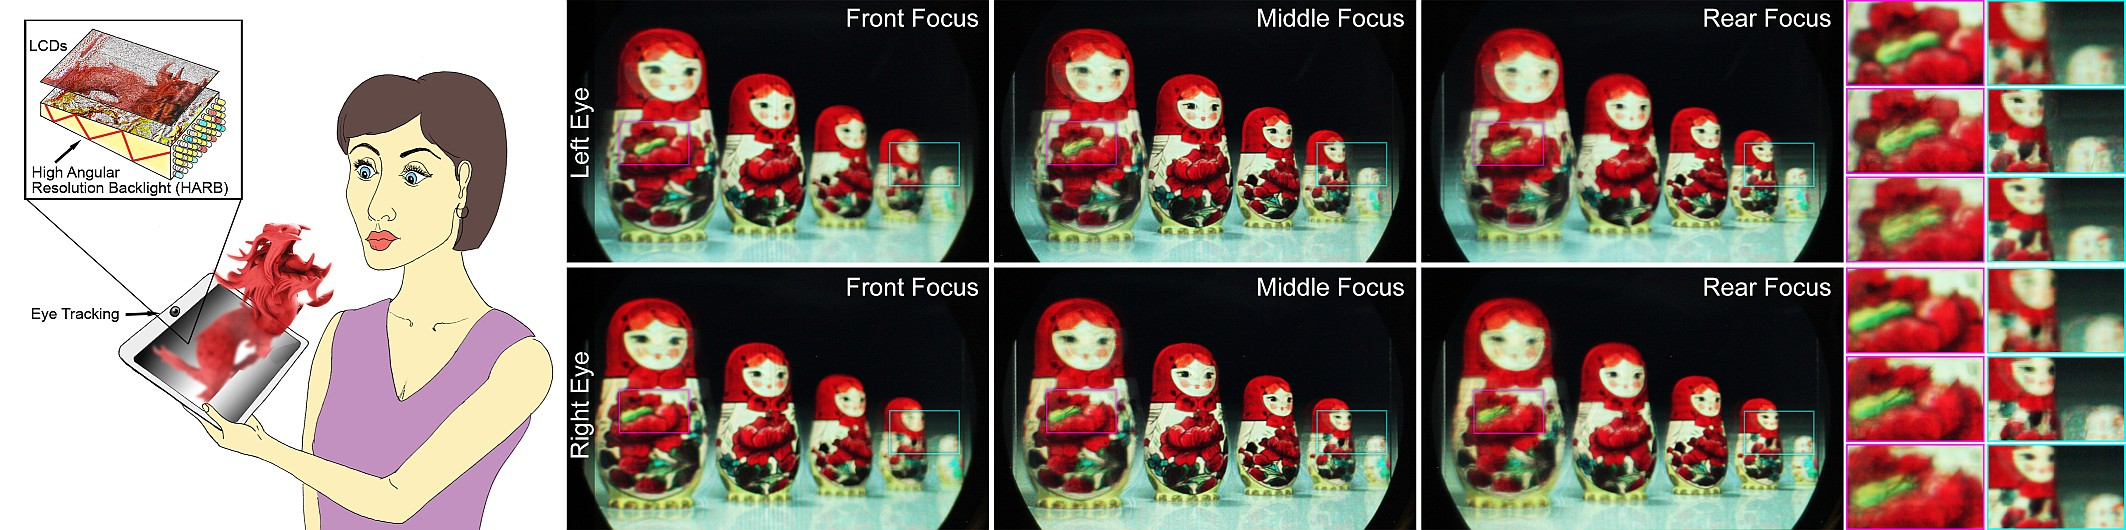 Figure 1: Focus 3D concept and experimental results. We explore optical display designs that achieve very high angular resolution and can be flexibly steered to the eyes of an observer. Combined with compressive light field synthesis via non-negative tensor factorization, the Focus 3D architecture supports accommodative depth cues (Columns) in addition to motion parallax and binocular disparity (Rows).